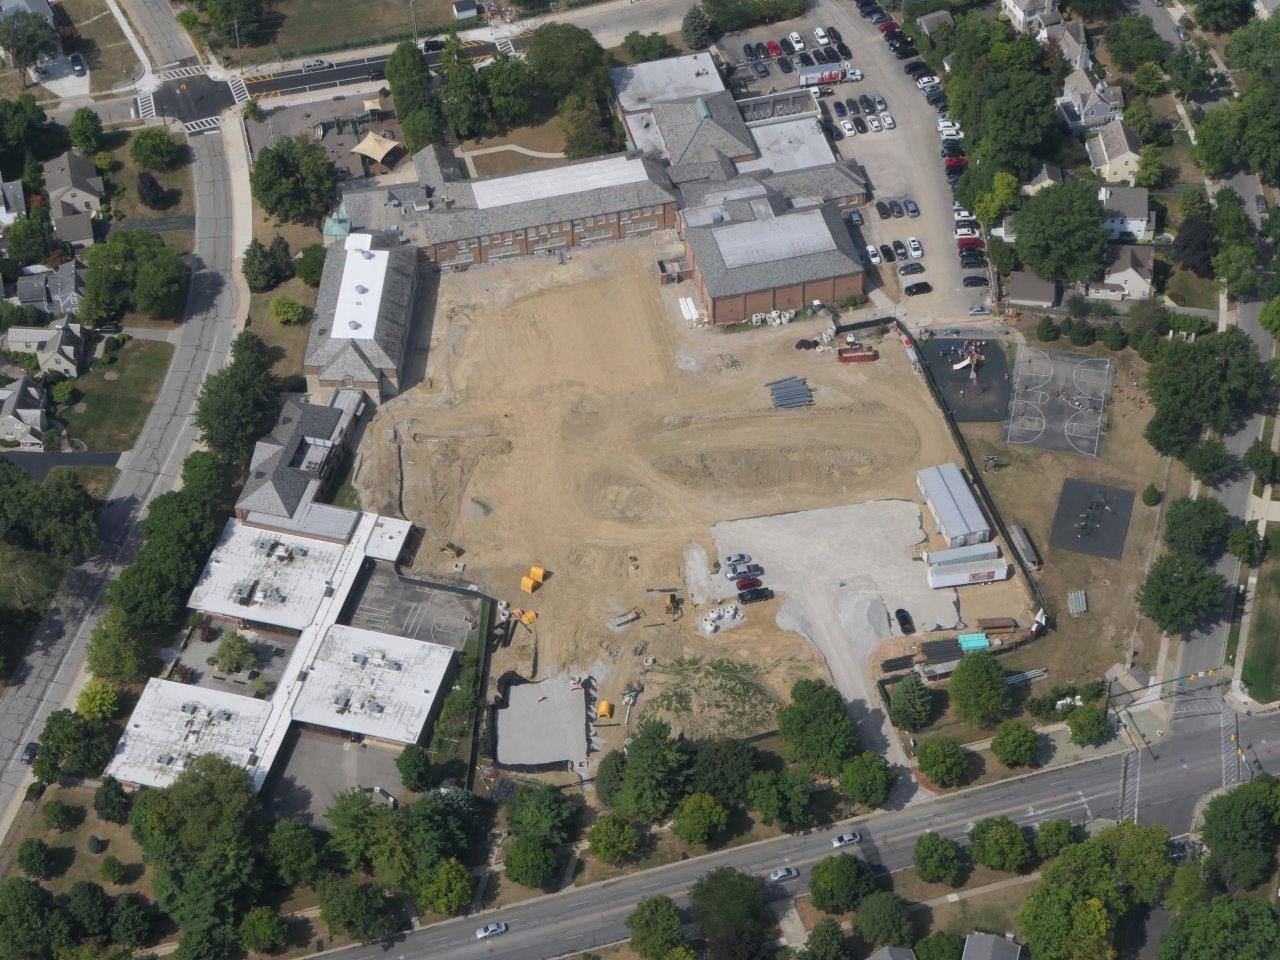 An aerial of the project site at Barrington Elementary School